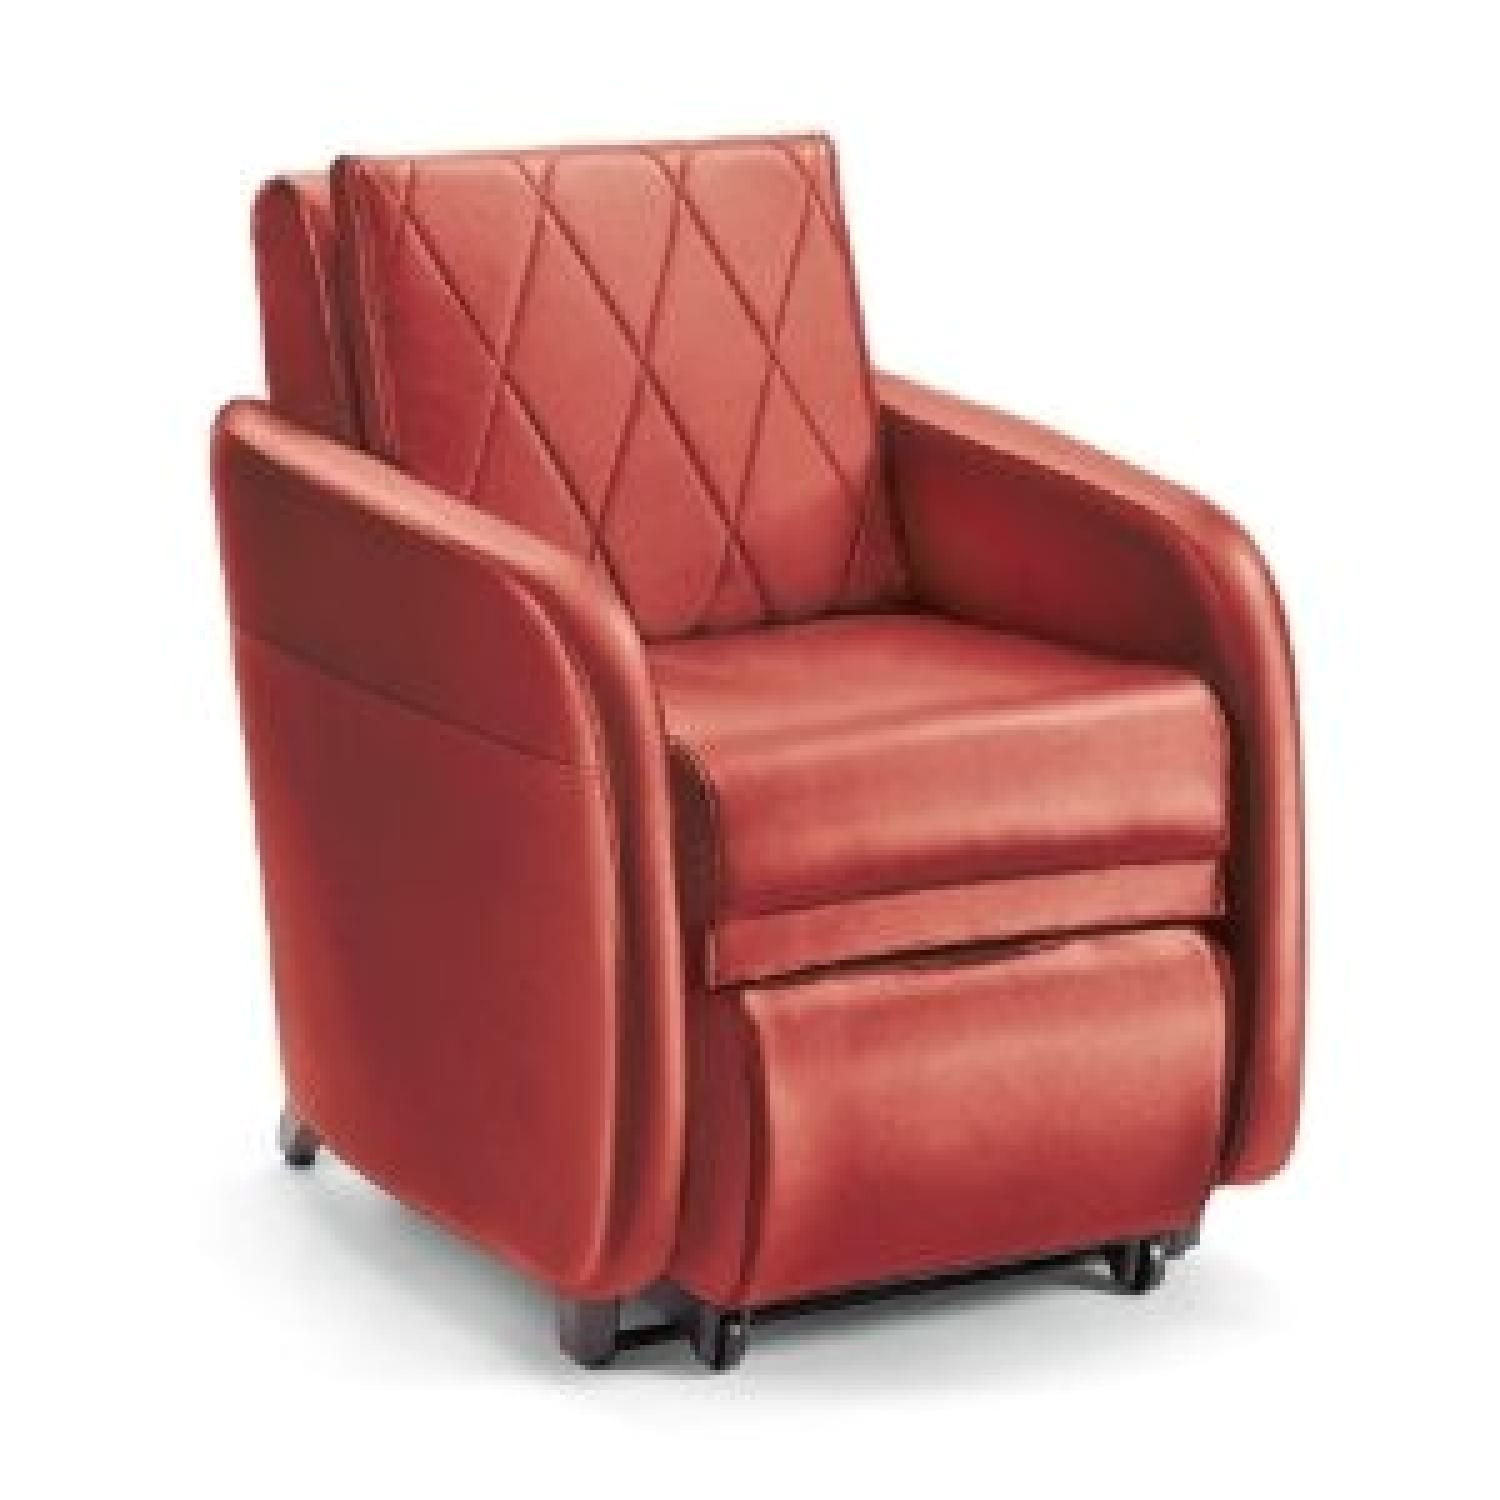 Cheap Recliner Chairs Under 100 Uk Brookstone Osim Ustyle2 Massage Chair In Sunset Red Madmen Don